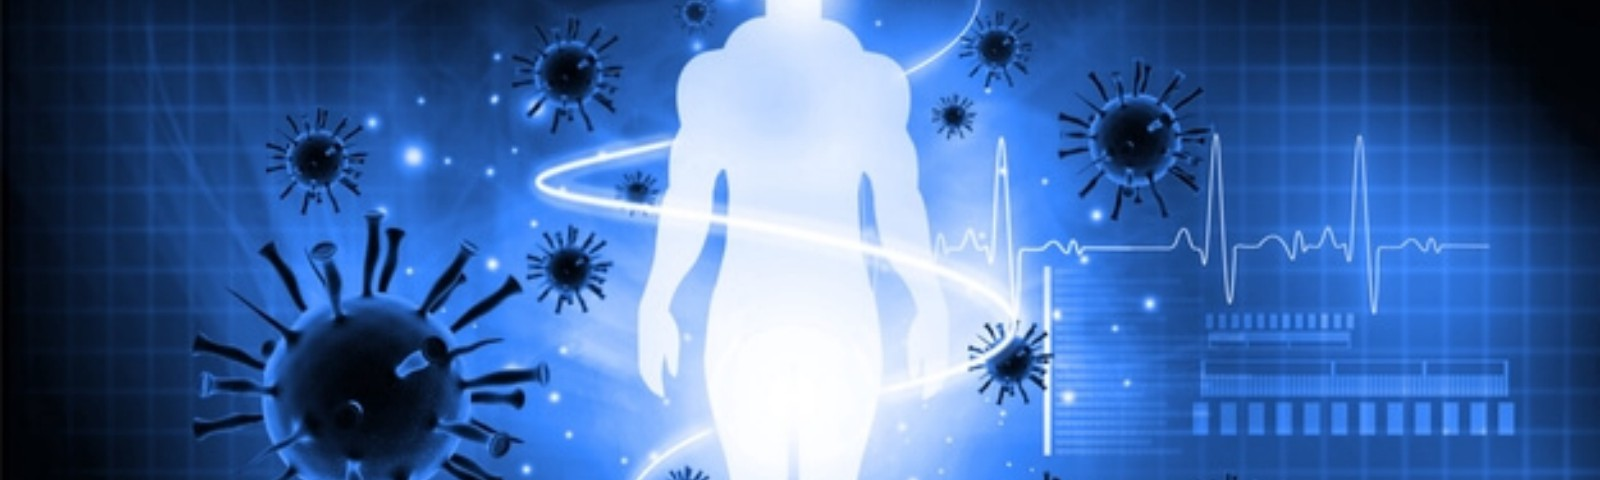 Equipping the Immune System to Fight Against COVID-19 | BioSpace